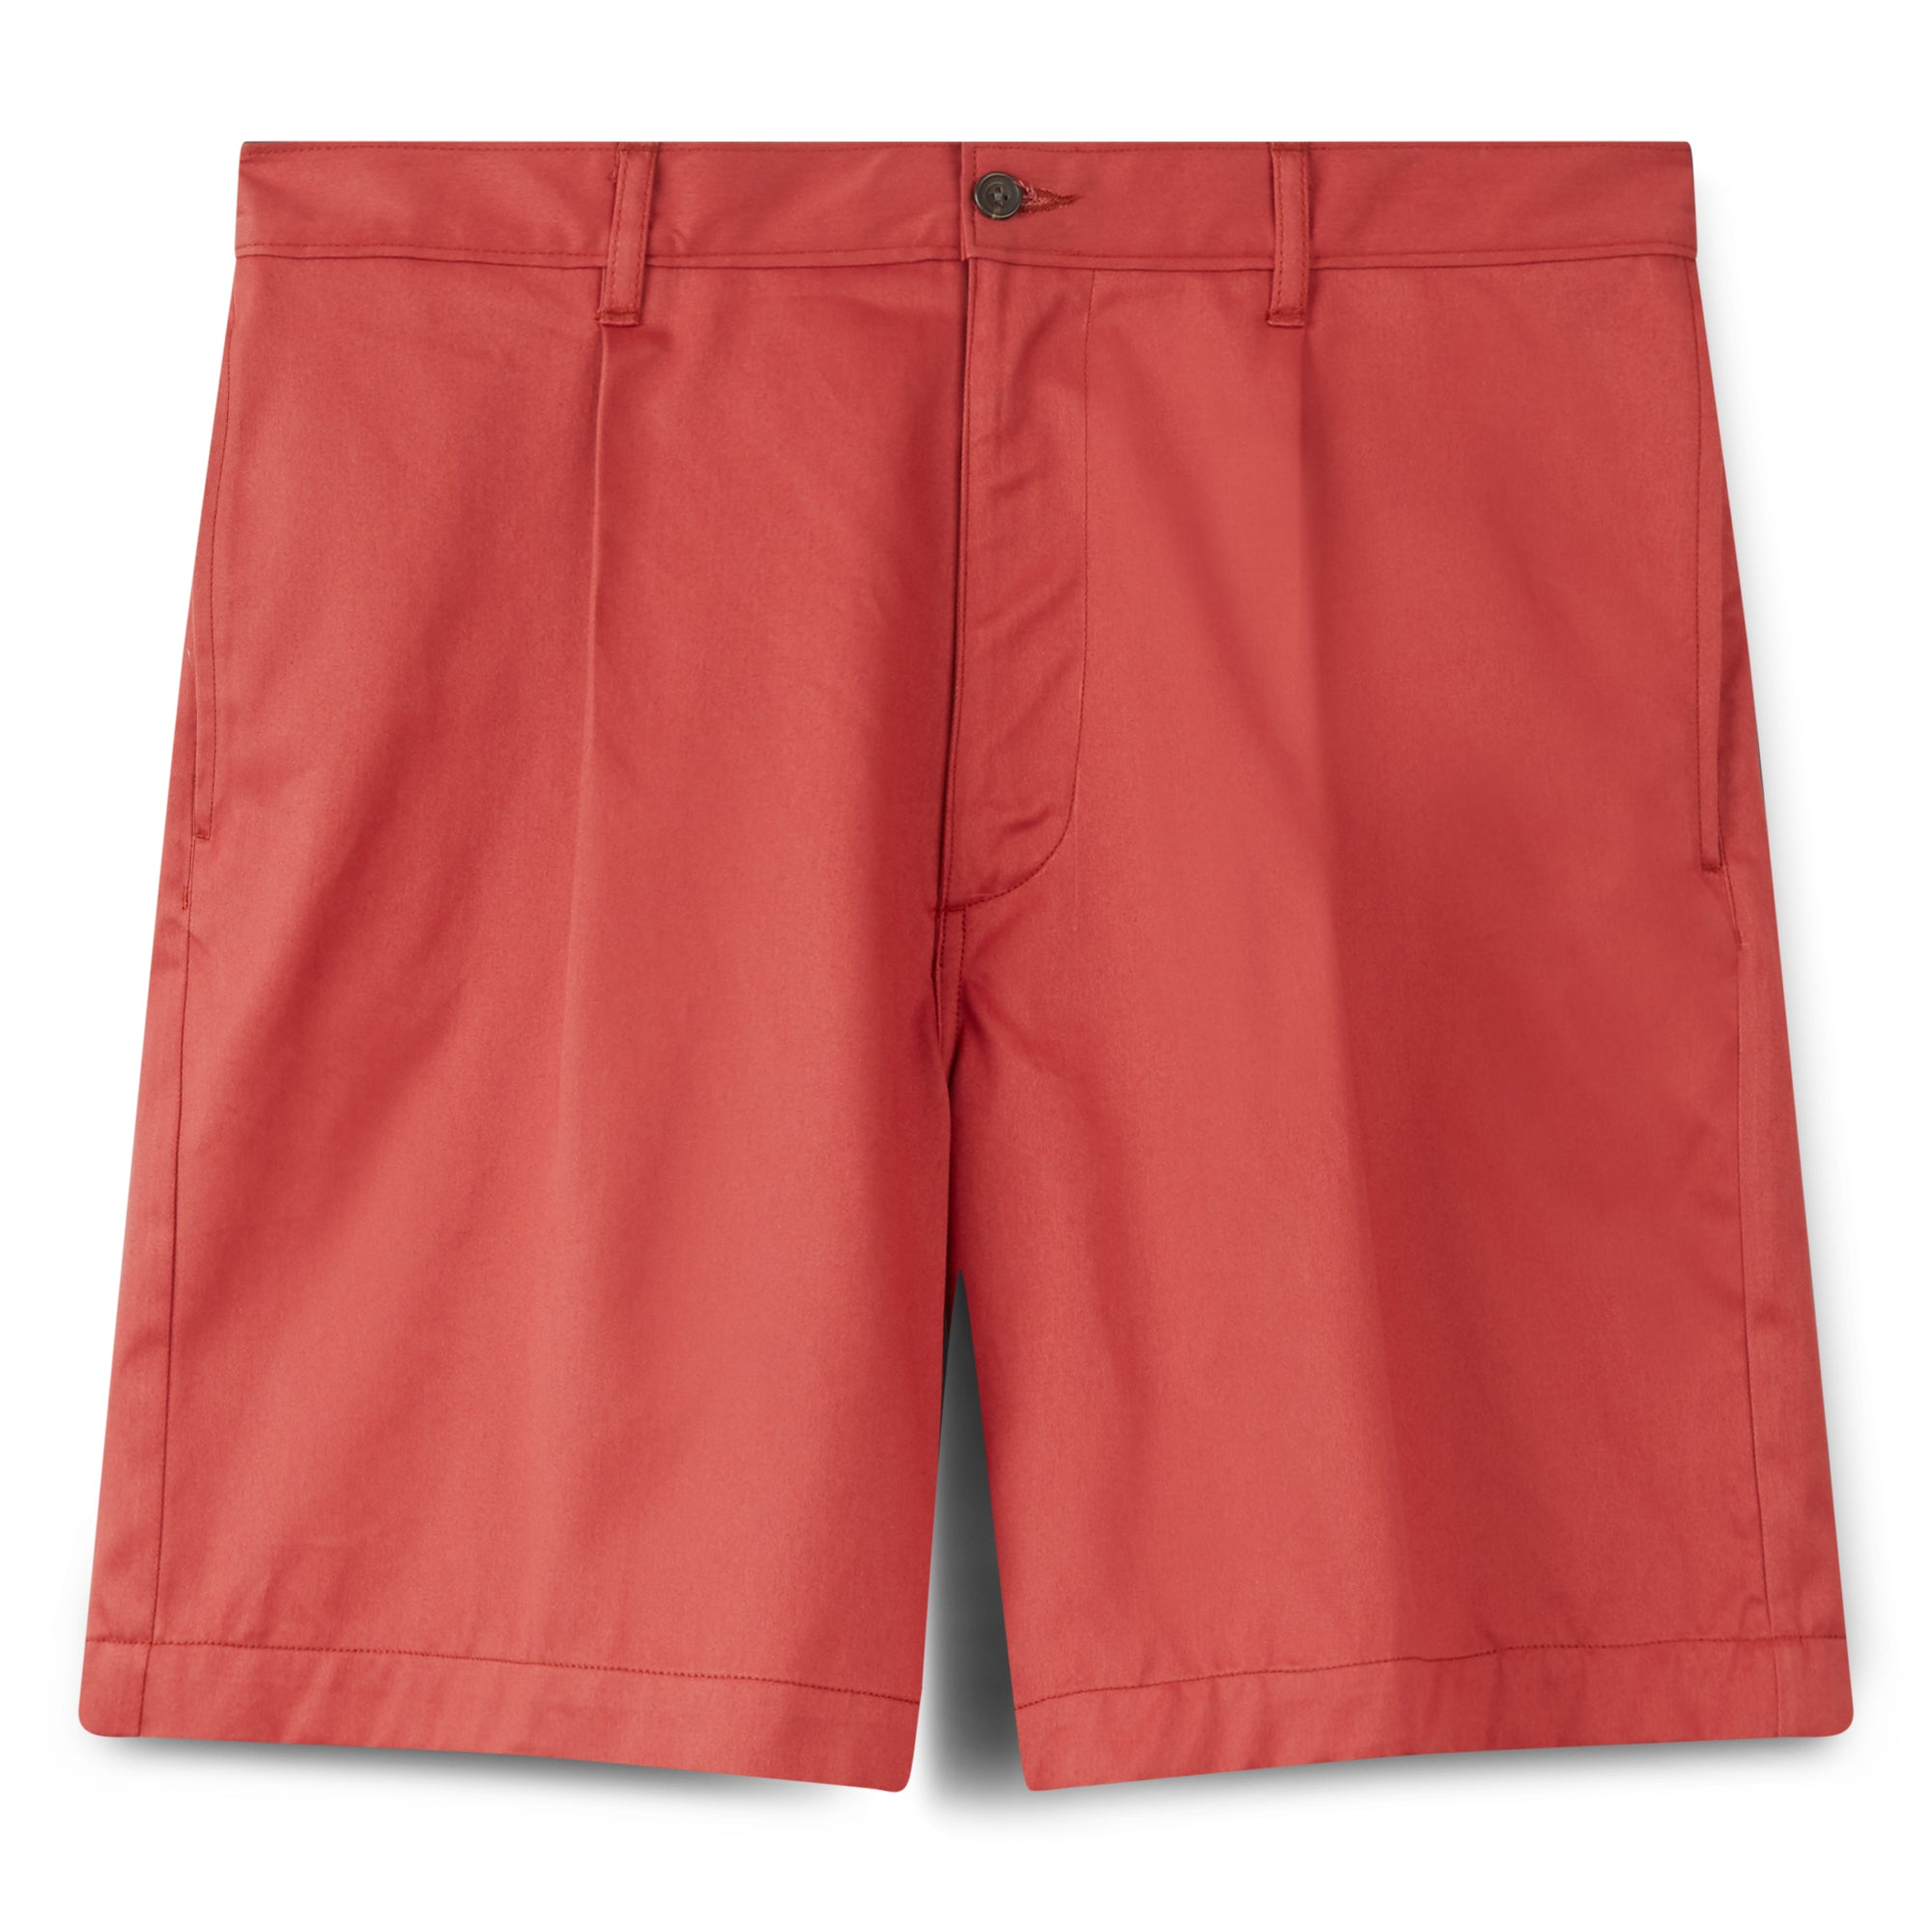 Men's Cotton Shorts - Pleated - Pink | Community Clothing